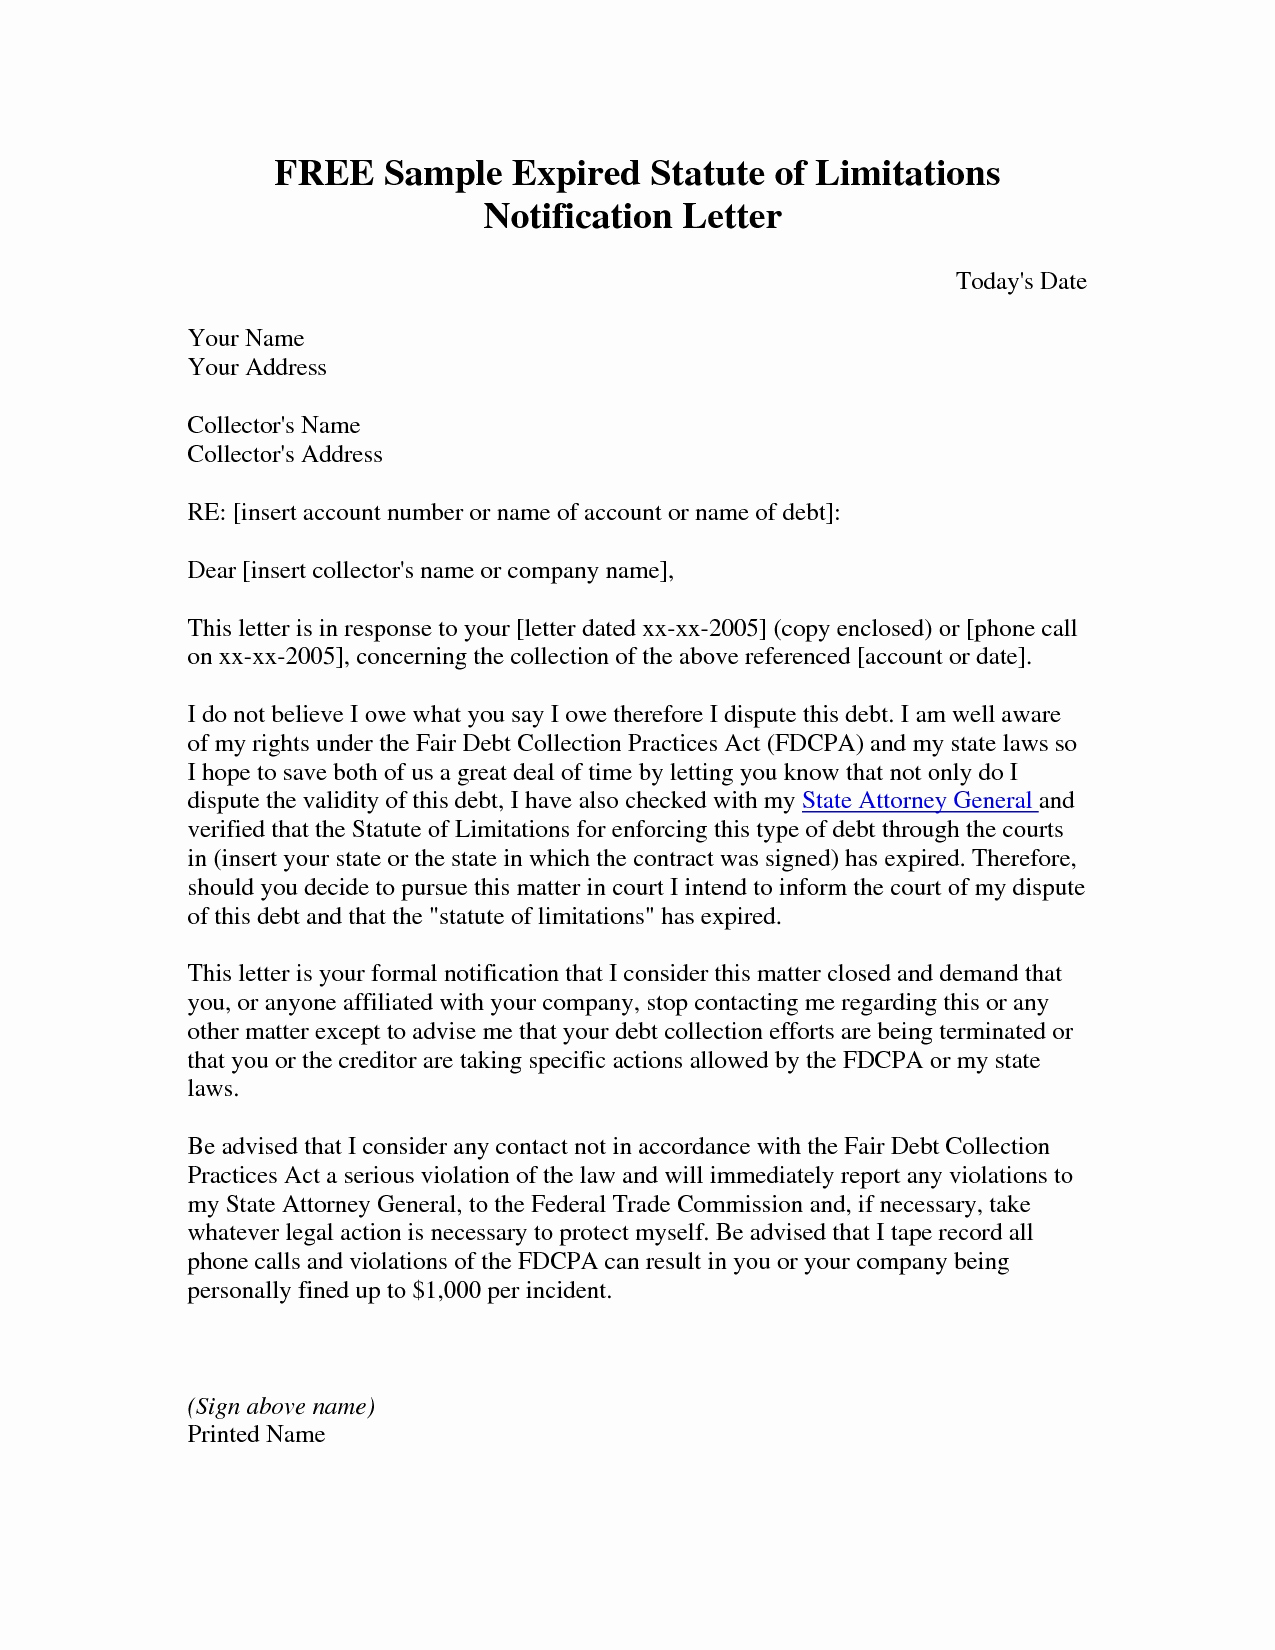 Letter to Judge format Elegant Legal Letter format to Judge